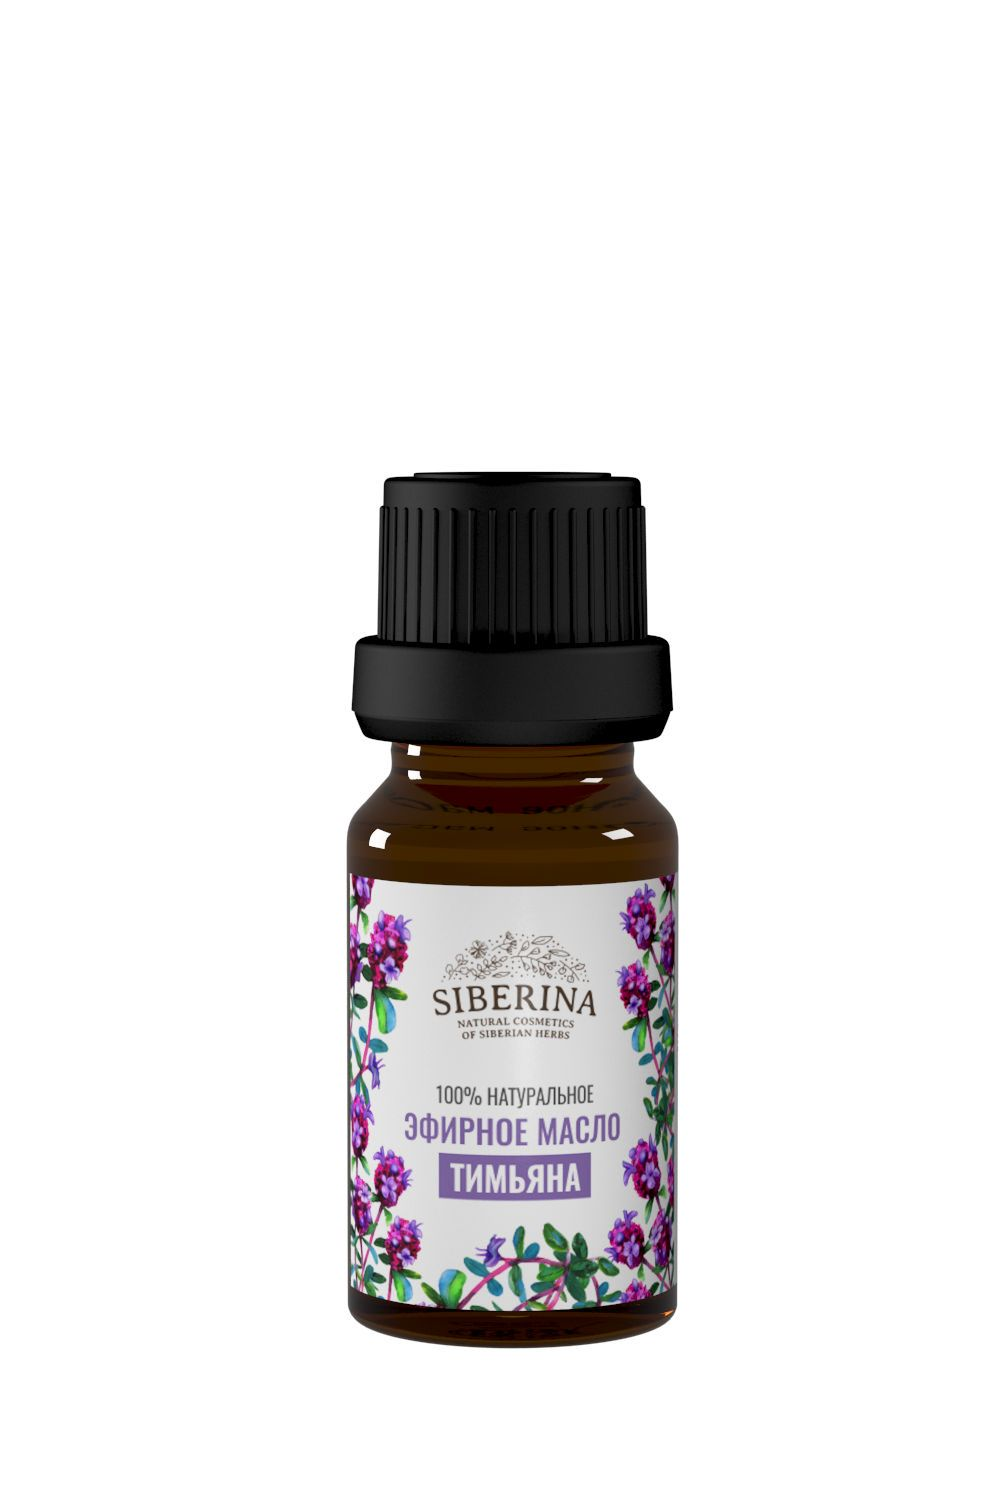 The essential oil of thyme SIBERINA